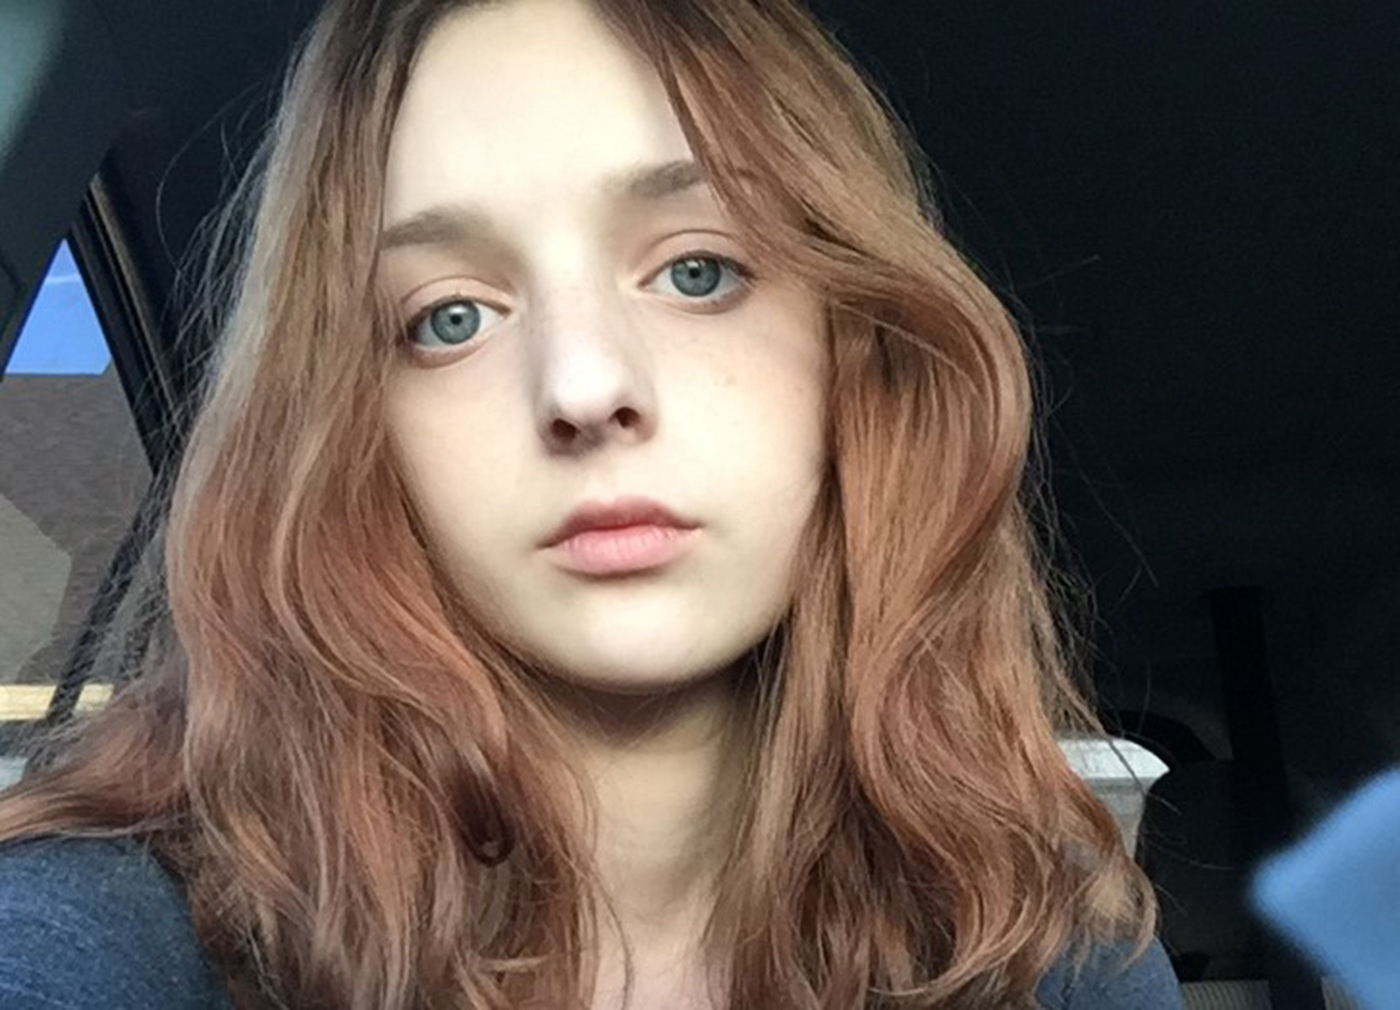 Ana Dooley in a selfie at age 14. She died of cancer at 15 in March 2017. MUST CREDIT: Courtesy of Jacqueline Dooley